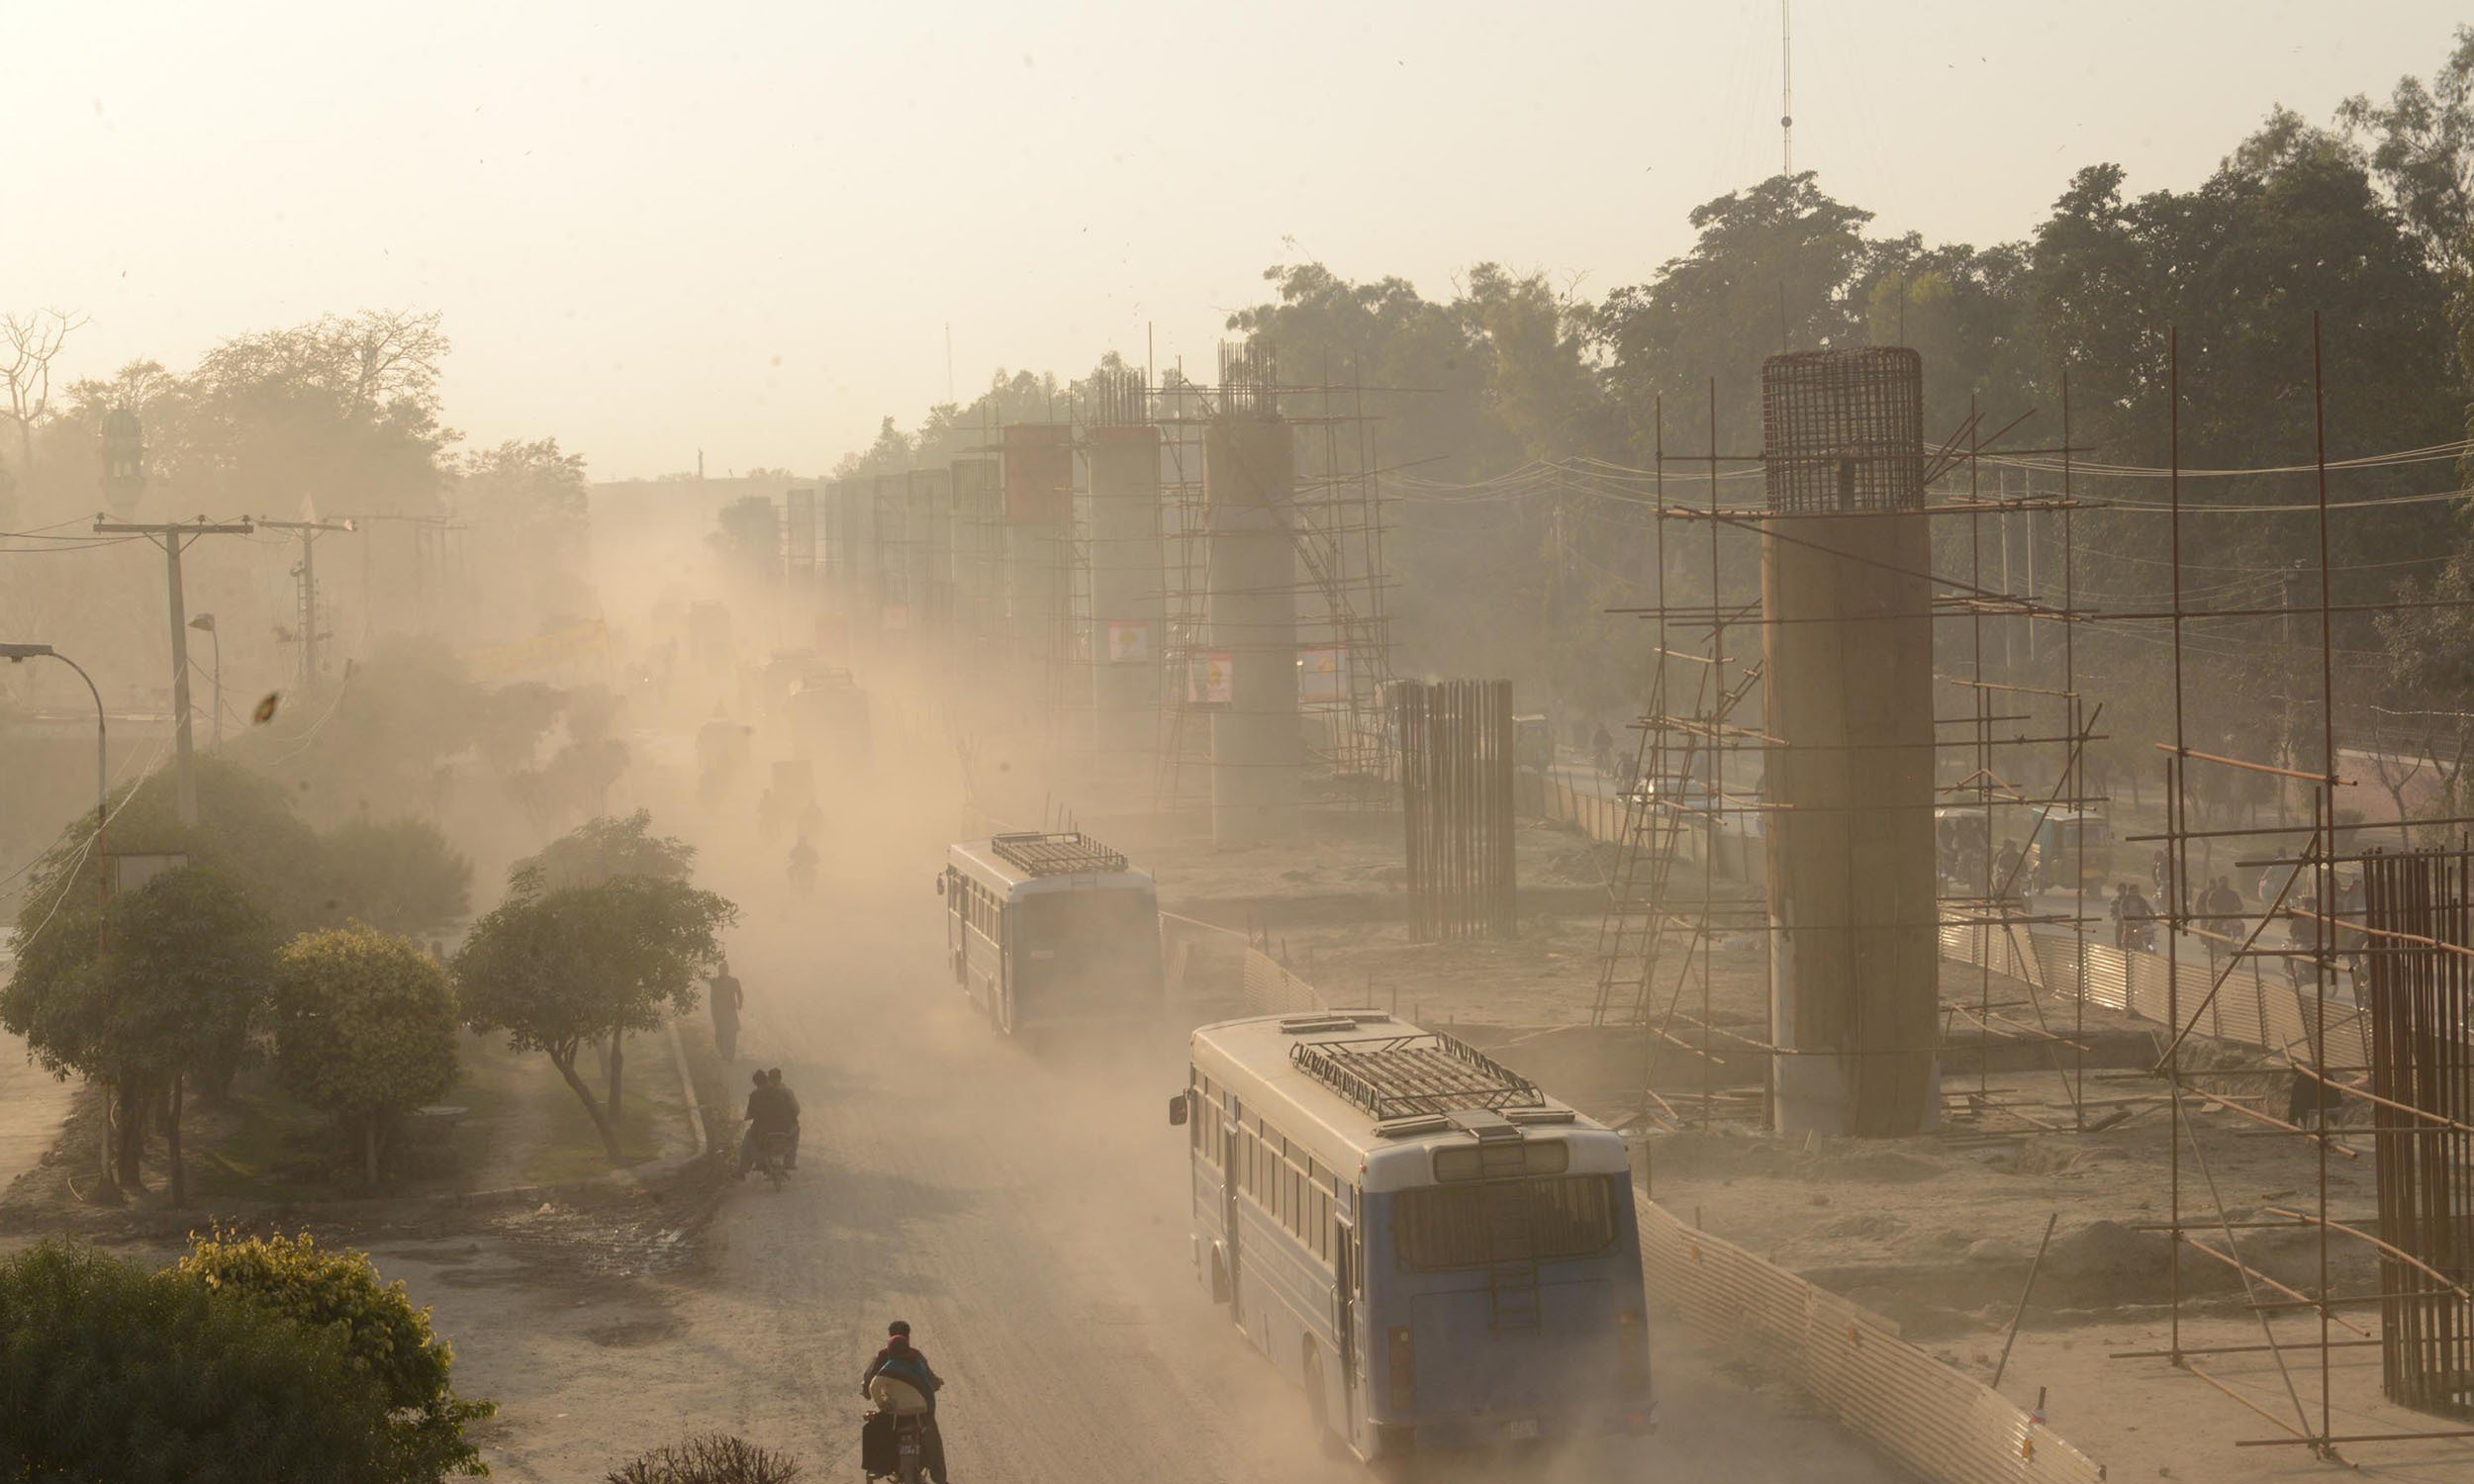 An overhead bridge being constructed for the Orange Line project in Lahore   Azhar Jafferi, White Star